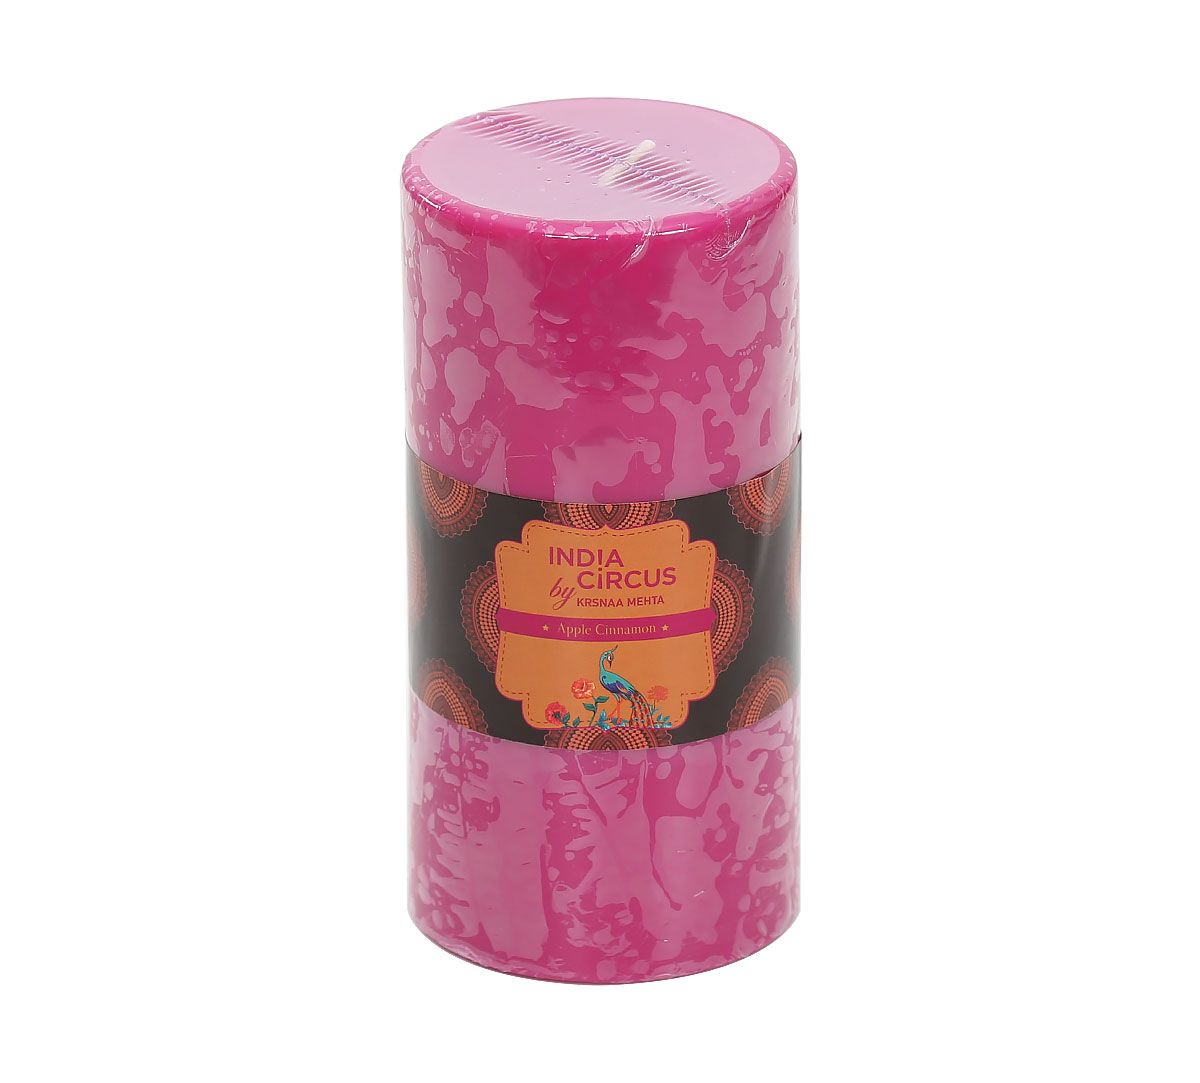 India Circus Apple Cinnamon Pillar Candle